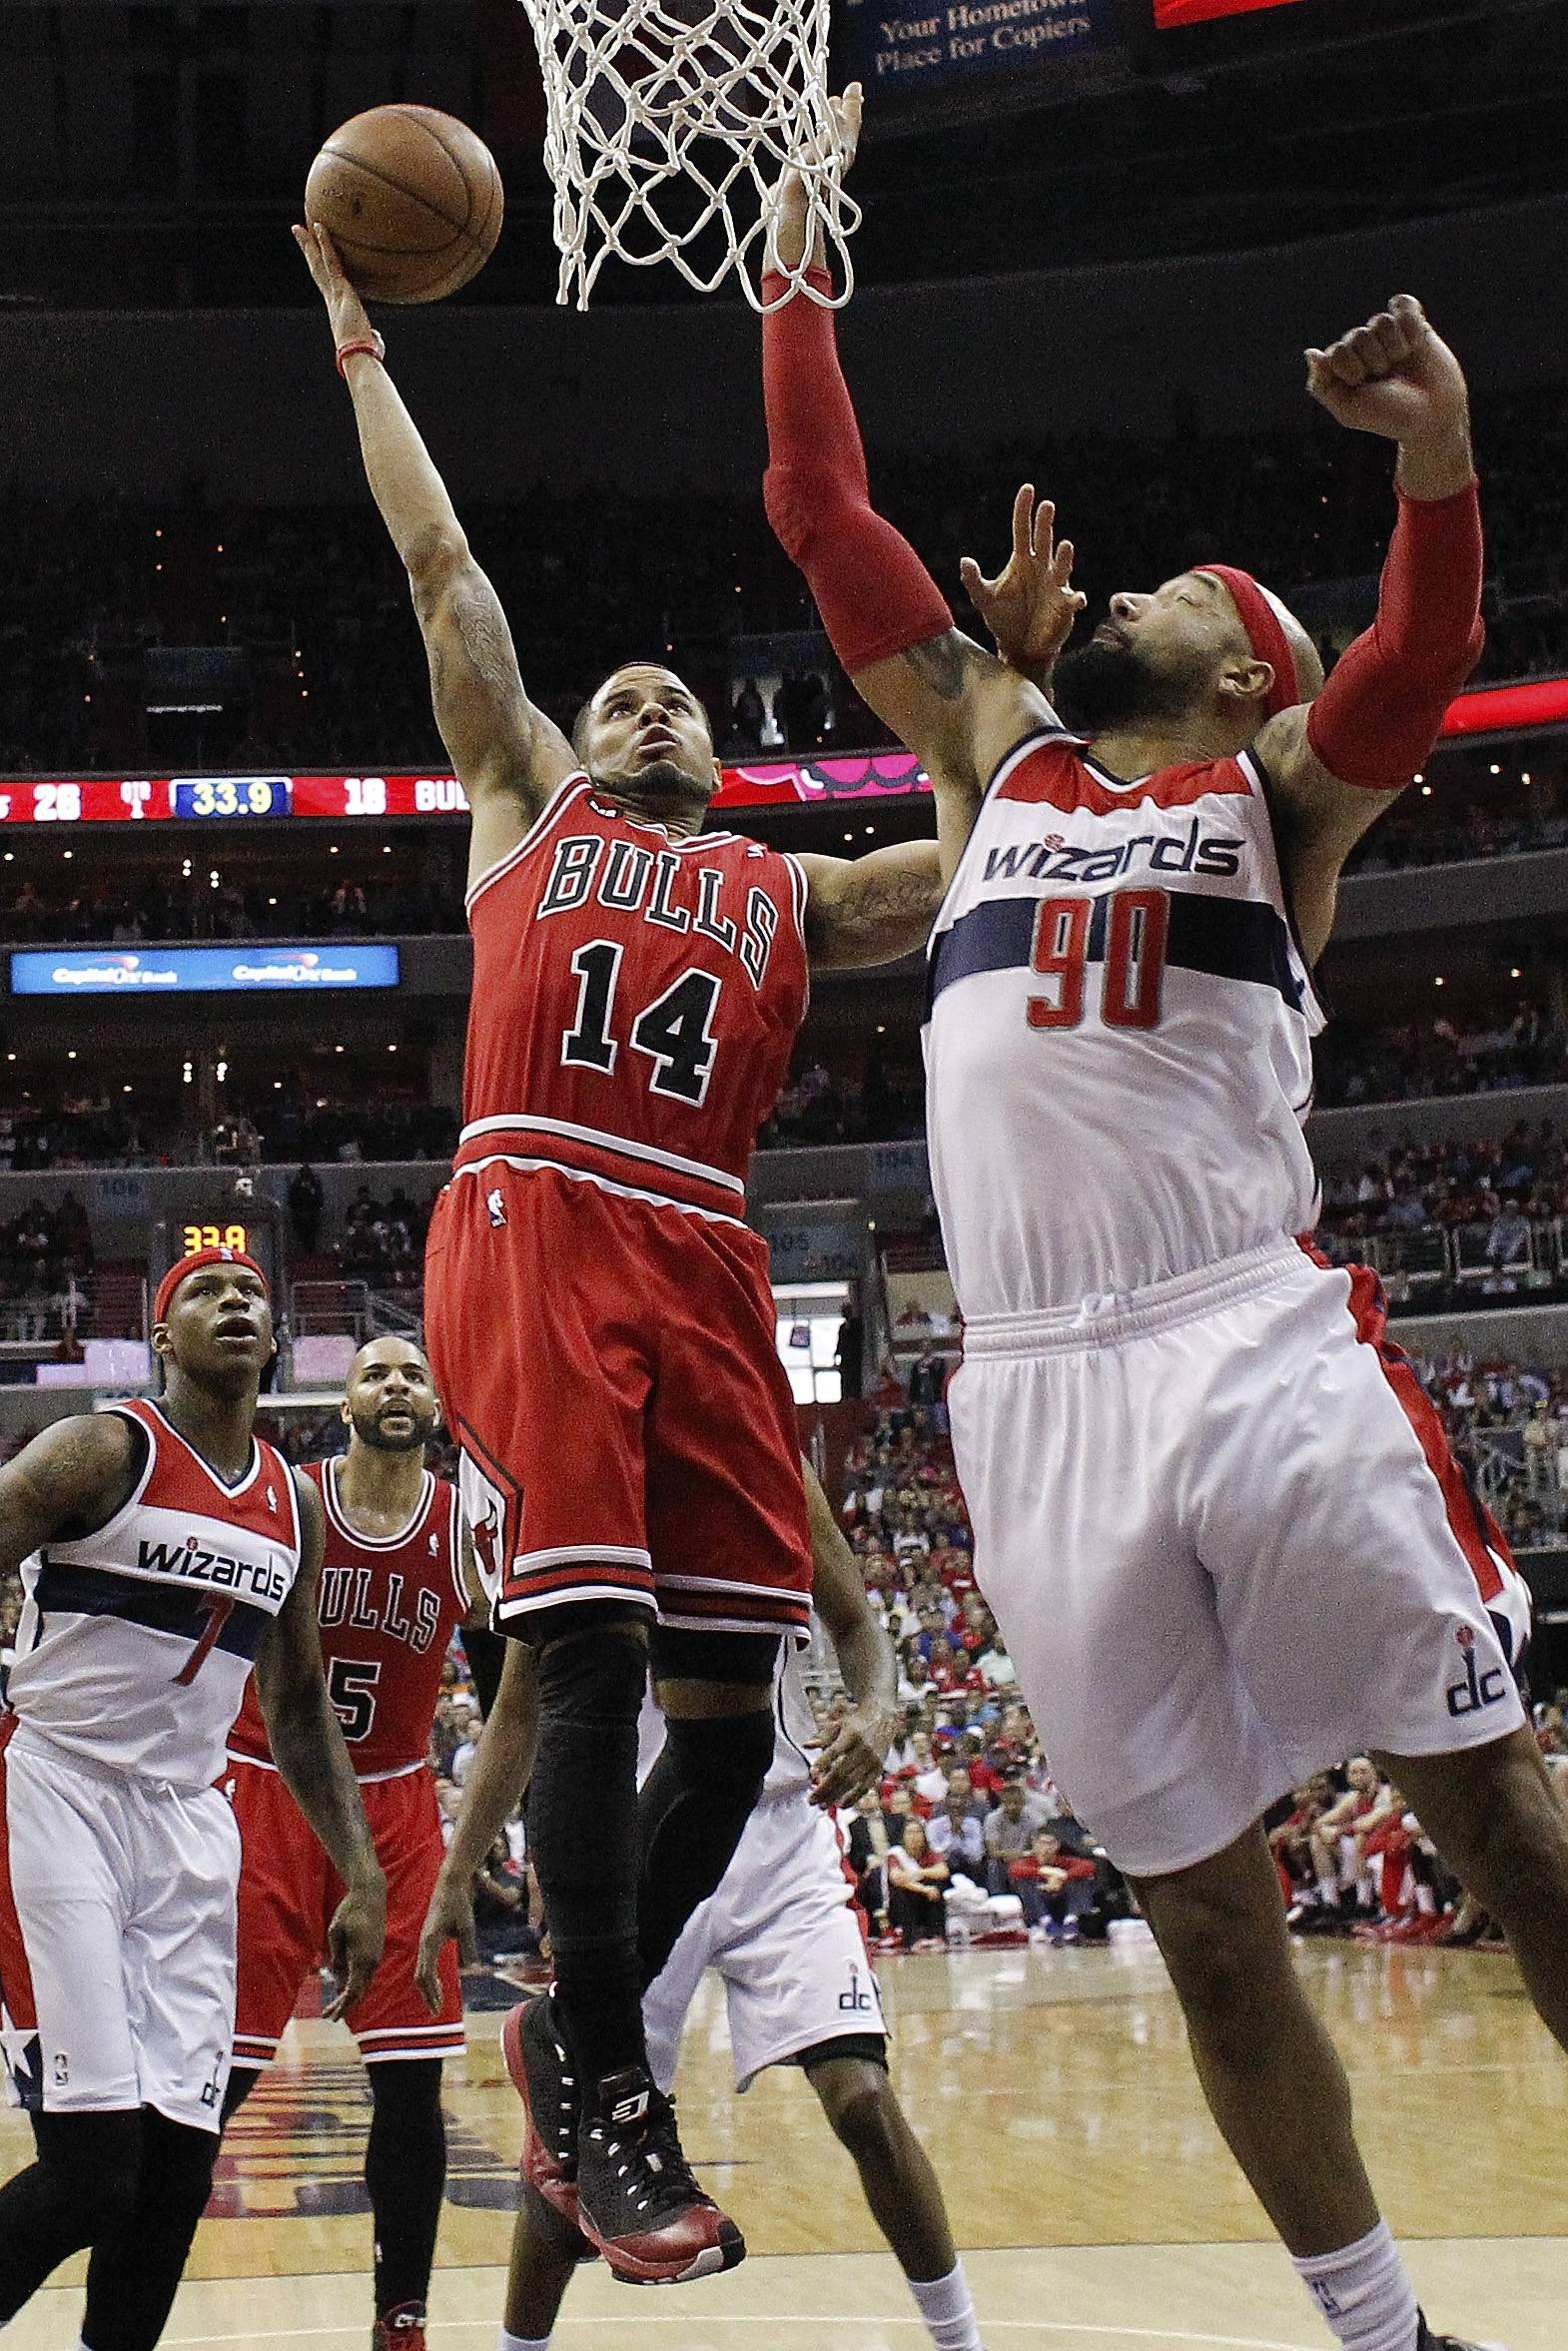 Washington Wizards forward Drew Gooden (90) reaches to block a shot by Chicago Bulls guard D.J. Augustin (14) at the basket during the first half.